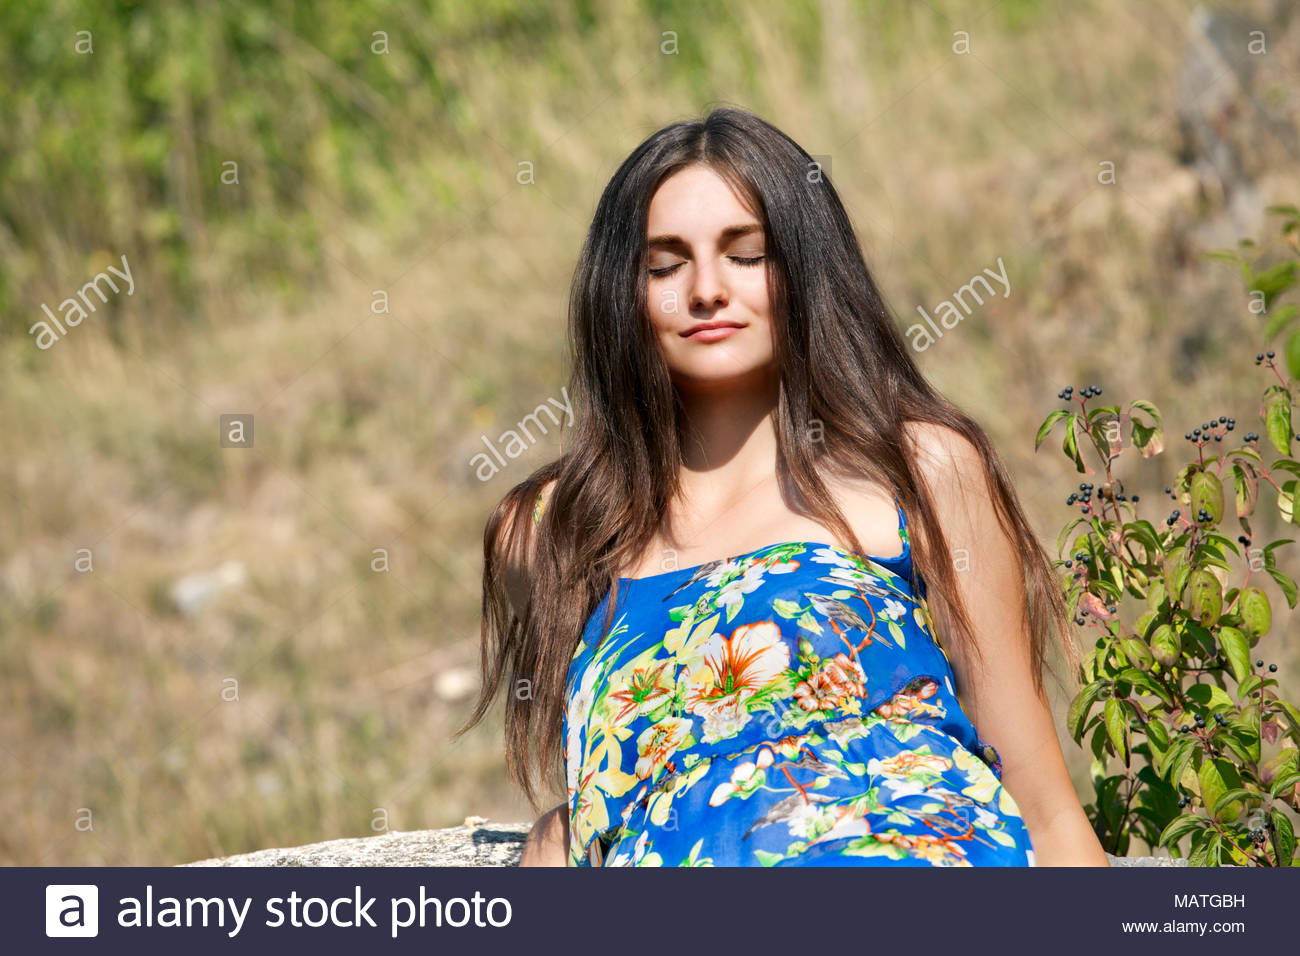 Young woman brunette, 20 years old, basking on the sun. - Stock Image